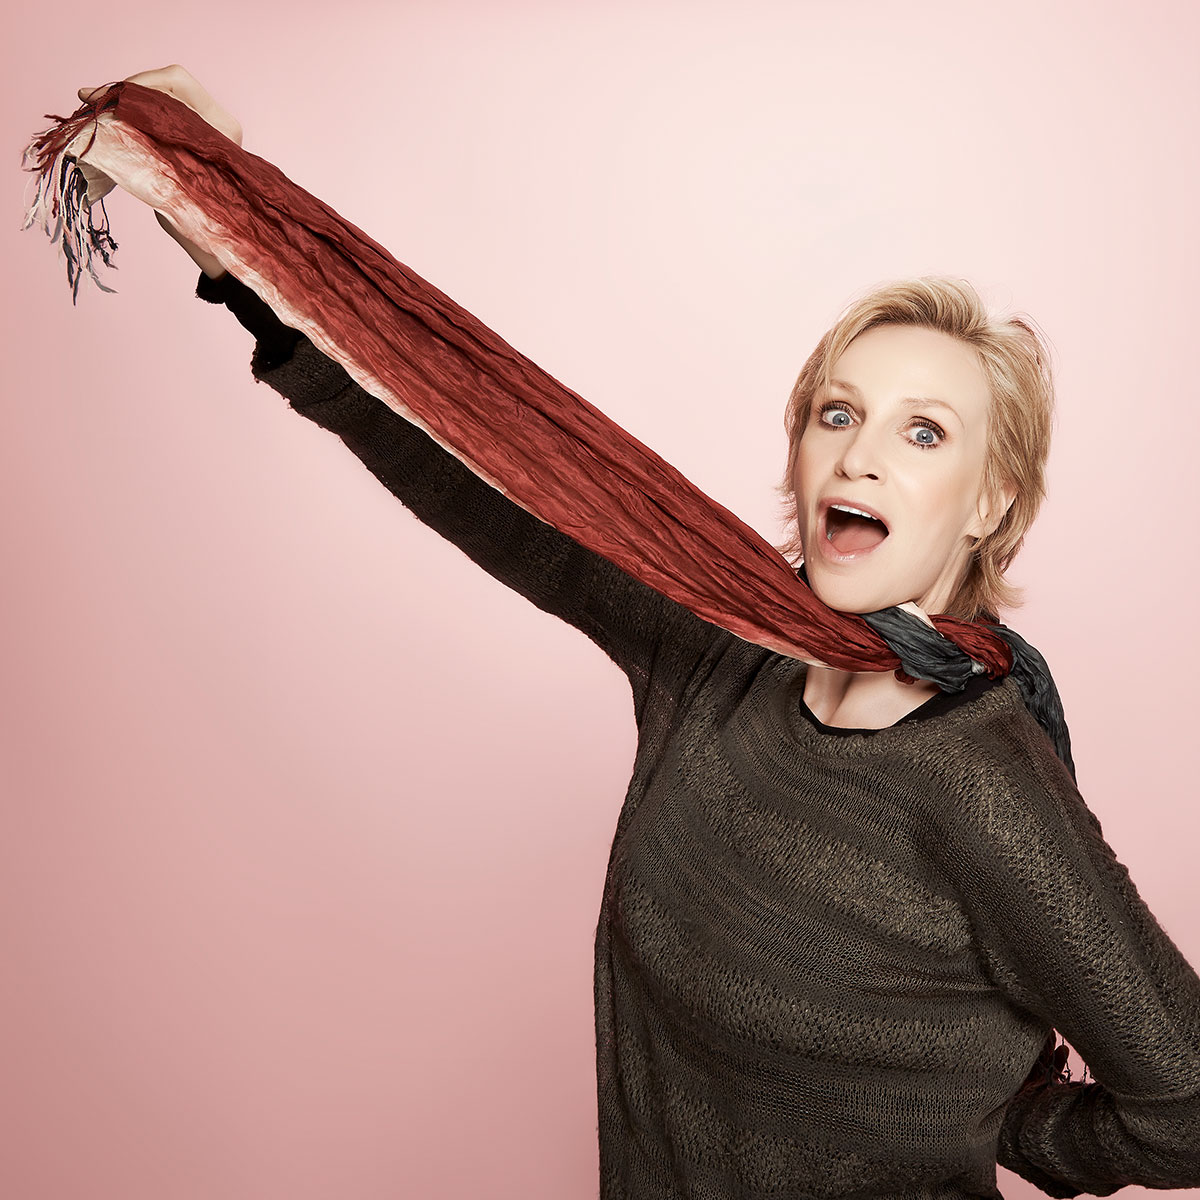 Entertainment Weekly feature on Sundance: Jane Lynch shot by Christopher Beyer